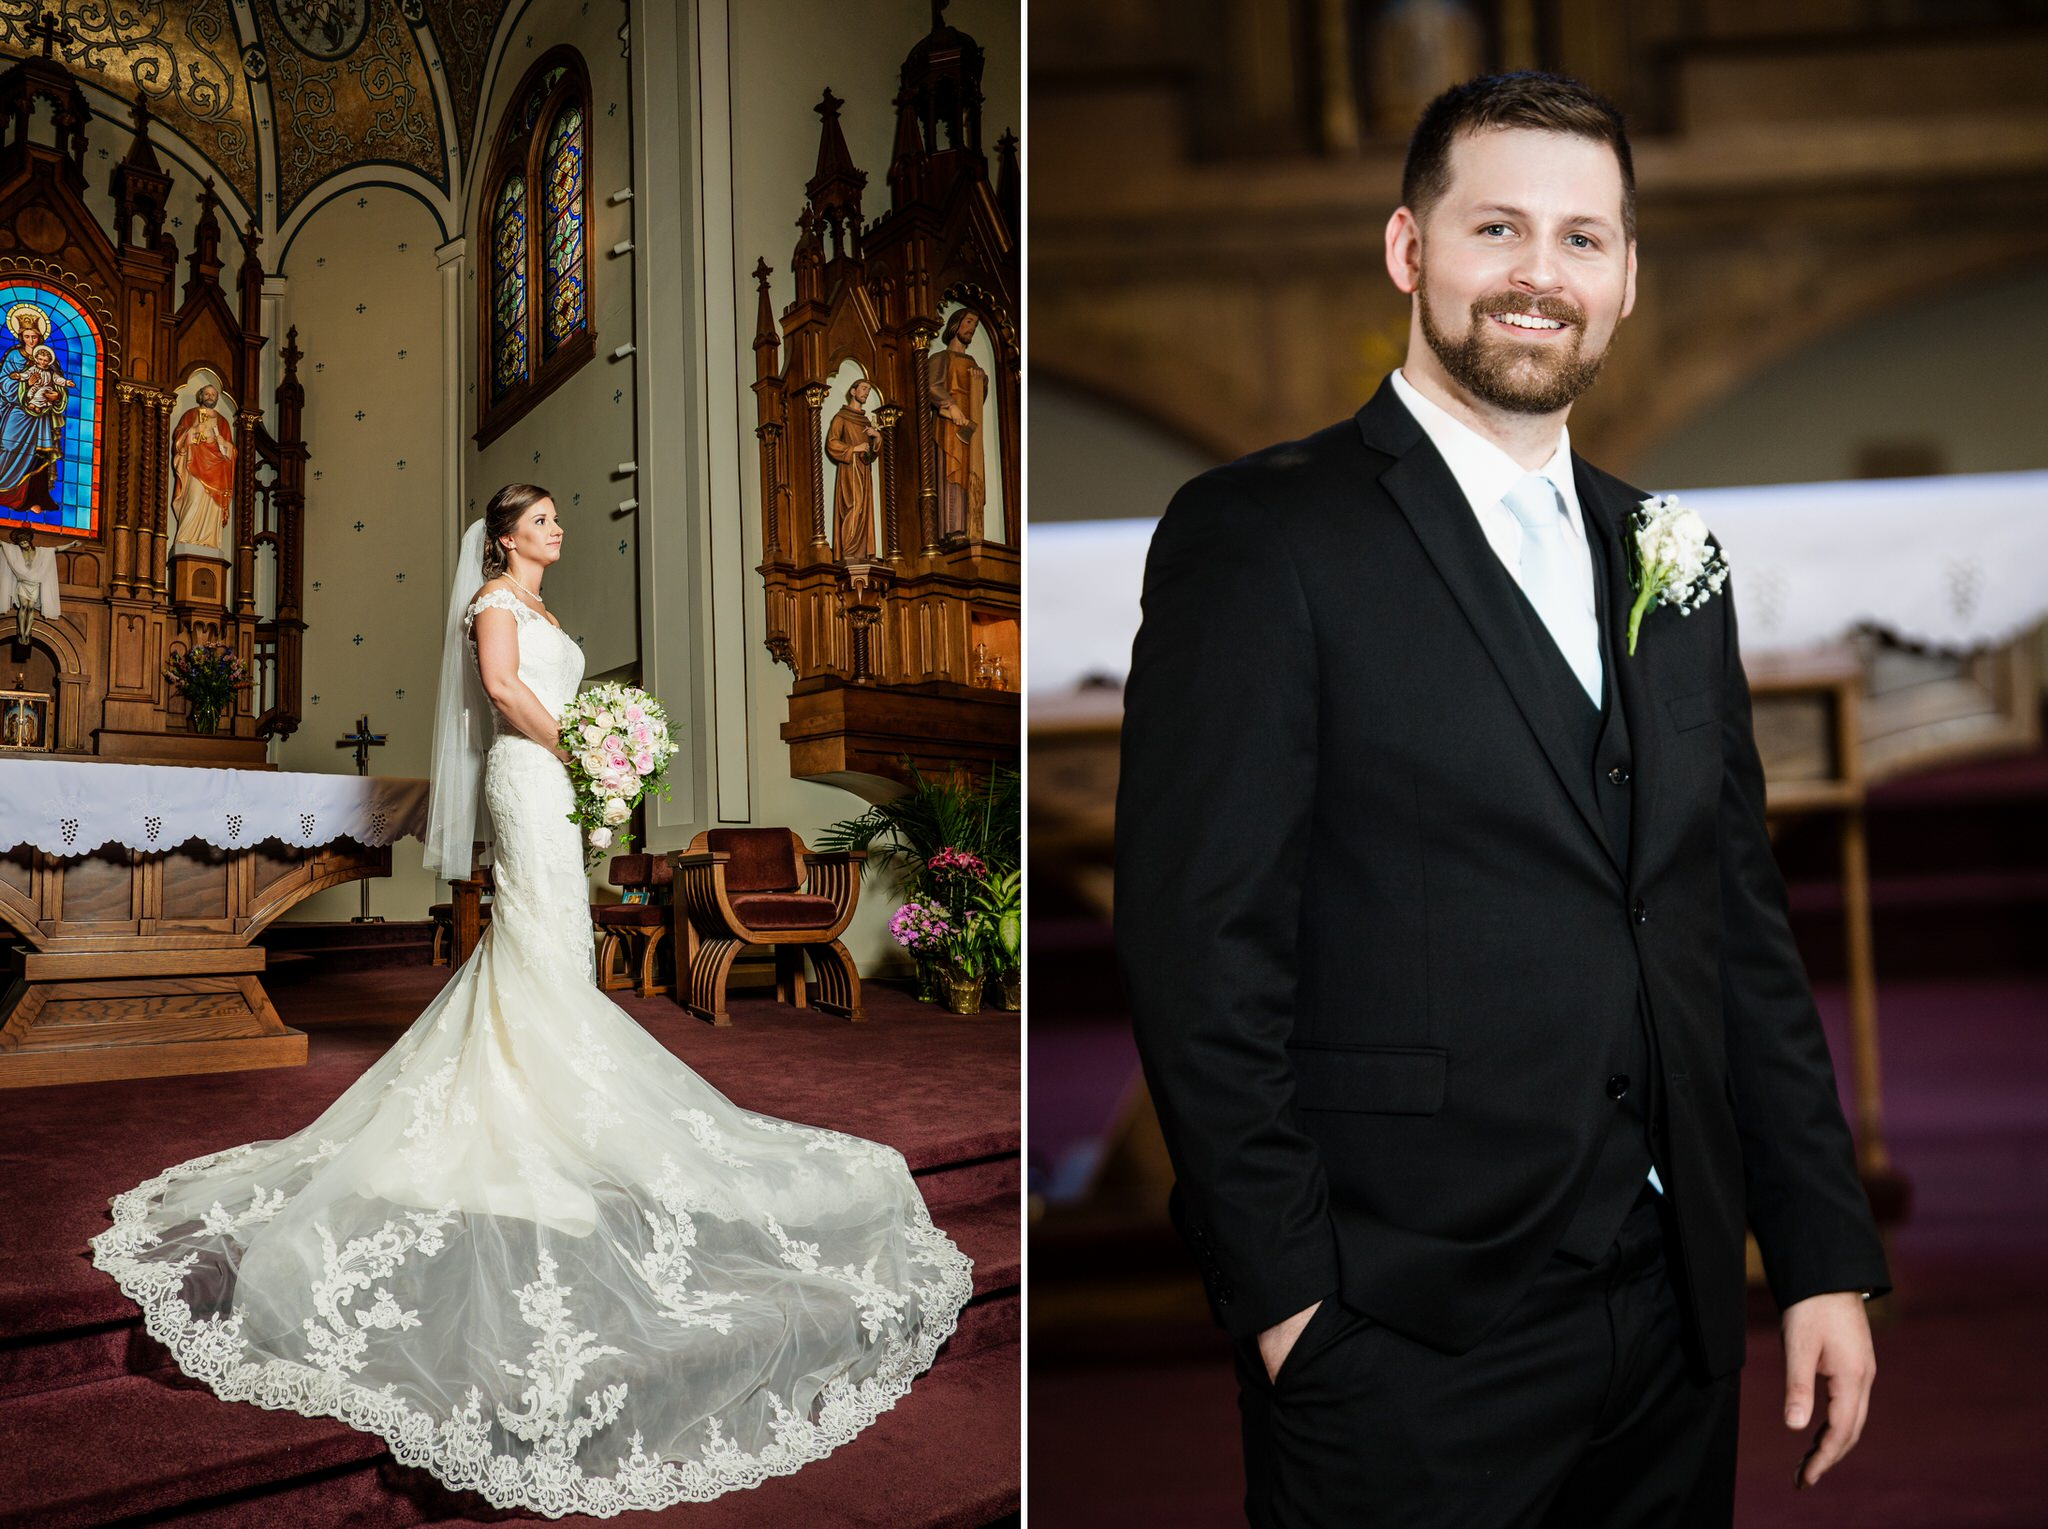 Bride and groom solo portraits at the altar of Saint Mary Catholic Church in Crown Point, Indiana.